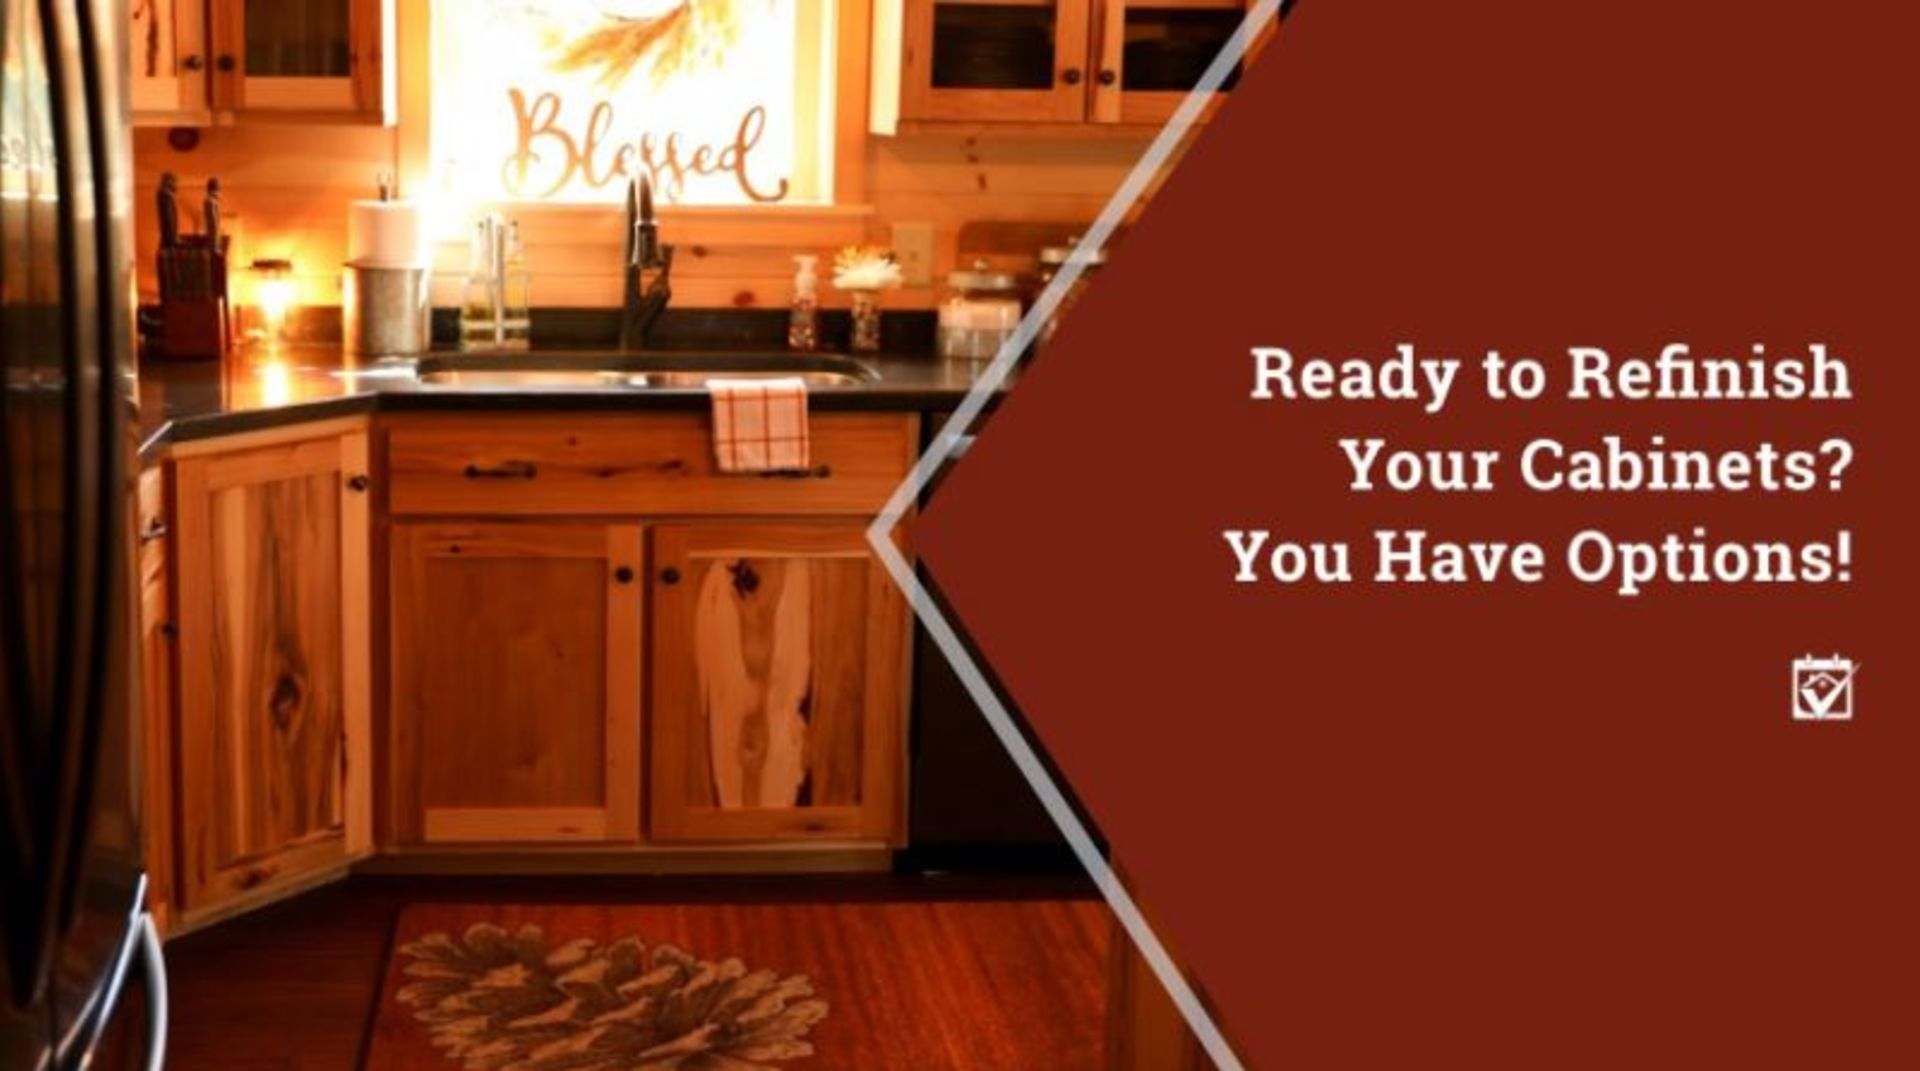 Ready to Refinish Your Cabinets? You Have Options!